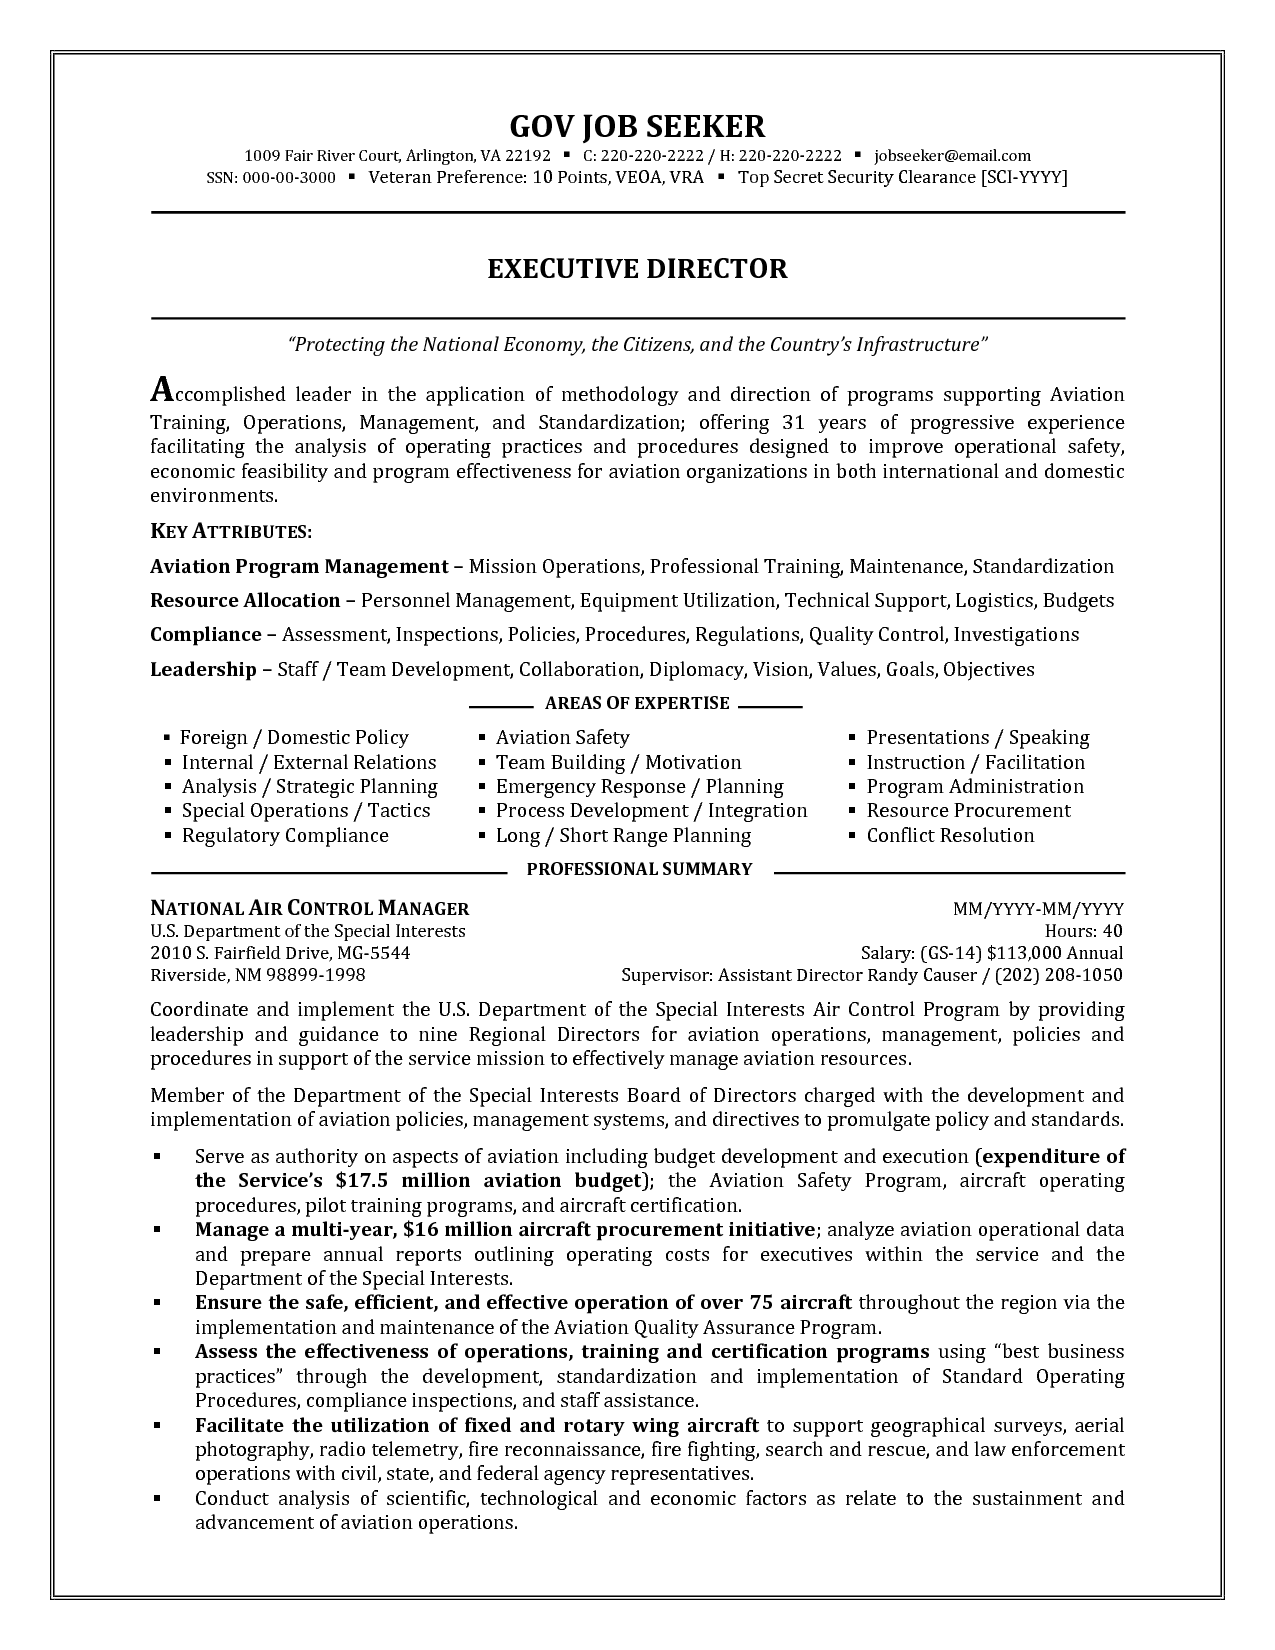 Resume Resume Examples Manufacturing Job film production assistant resume template httpwww resumecareer info job examplesgovernment